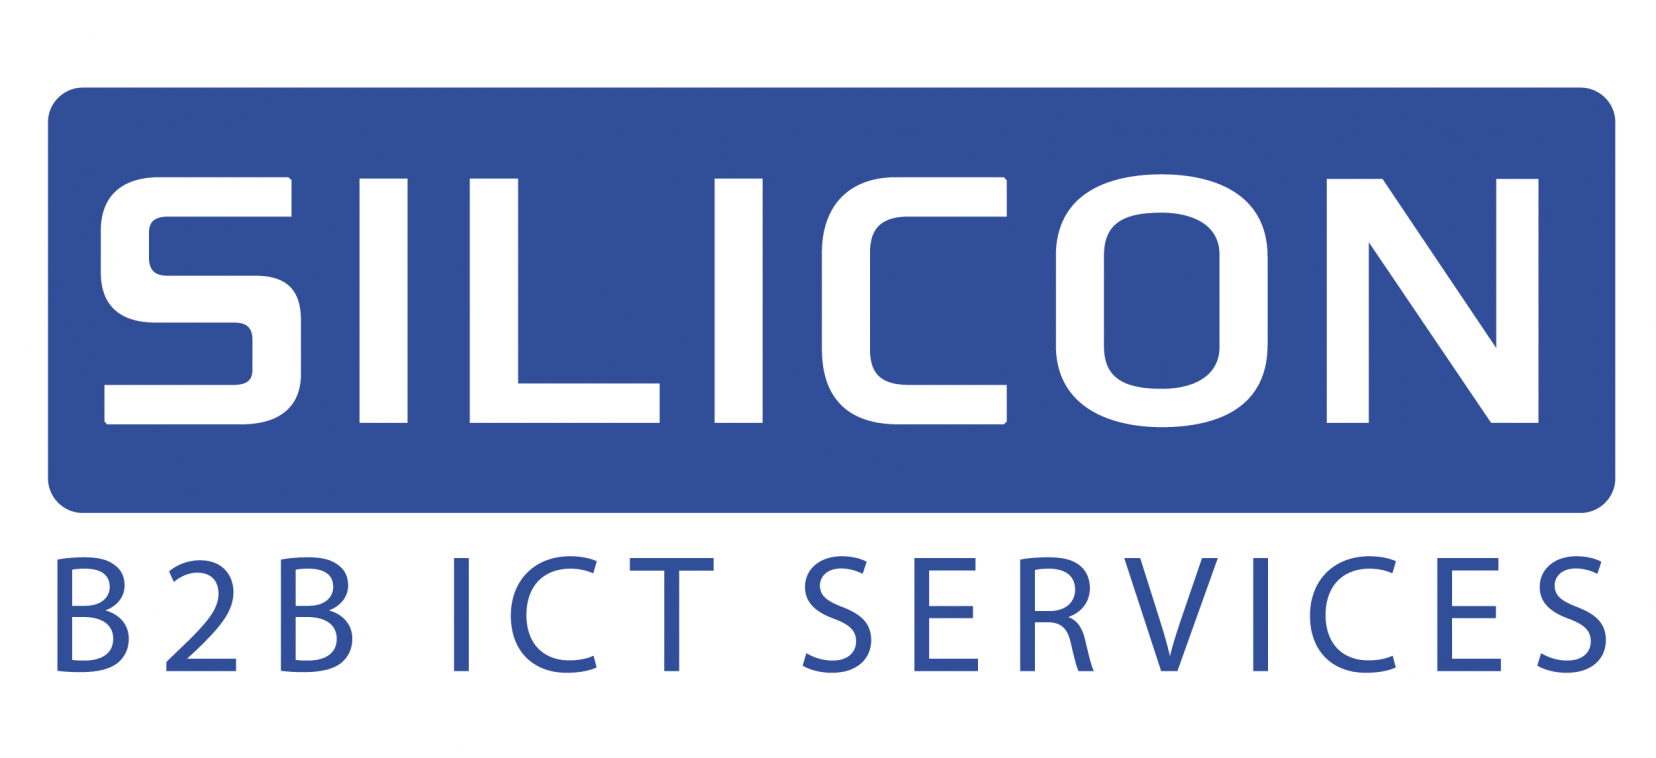 Silicon Logo 2018 B2B ICT blauw wit - Hires.png